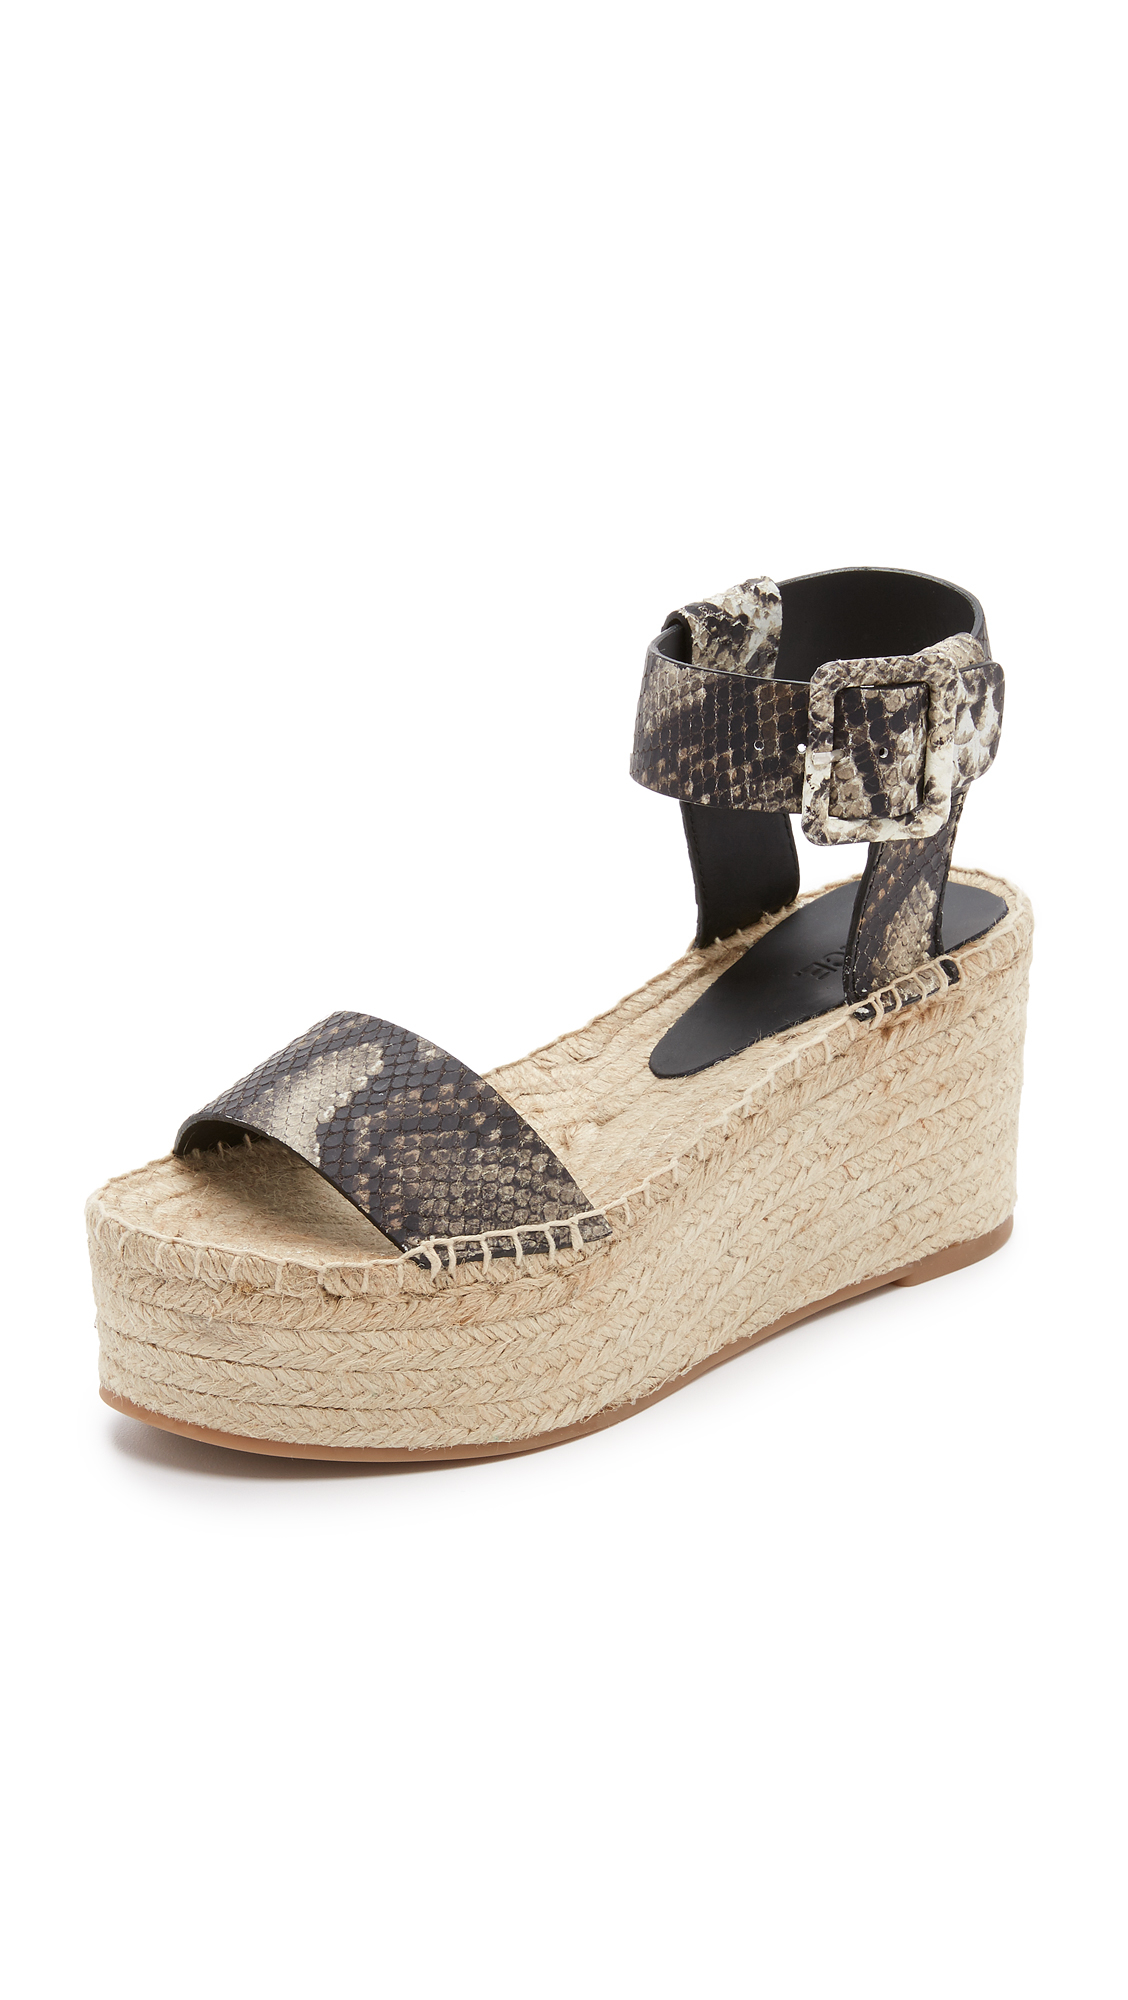 Natural Hair On Cowhide Oxford Shoes For Women